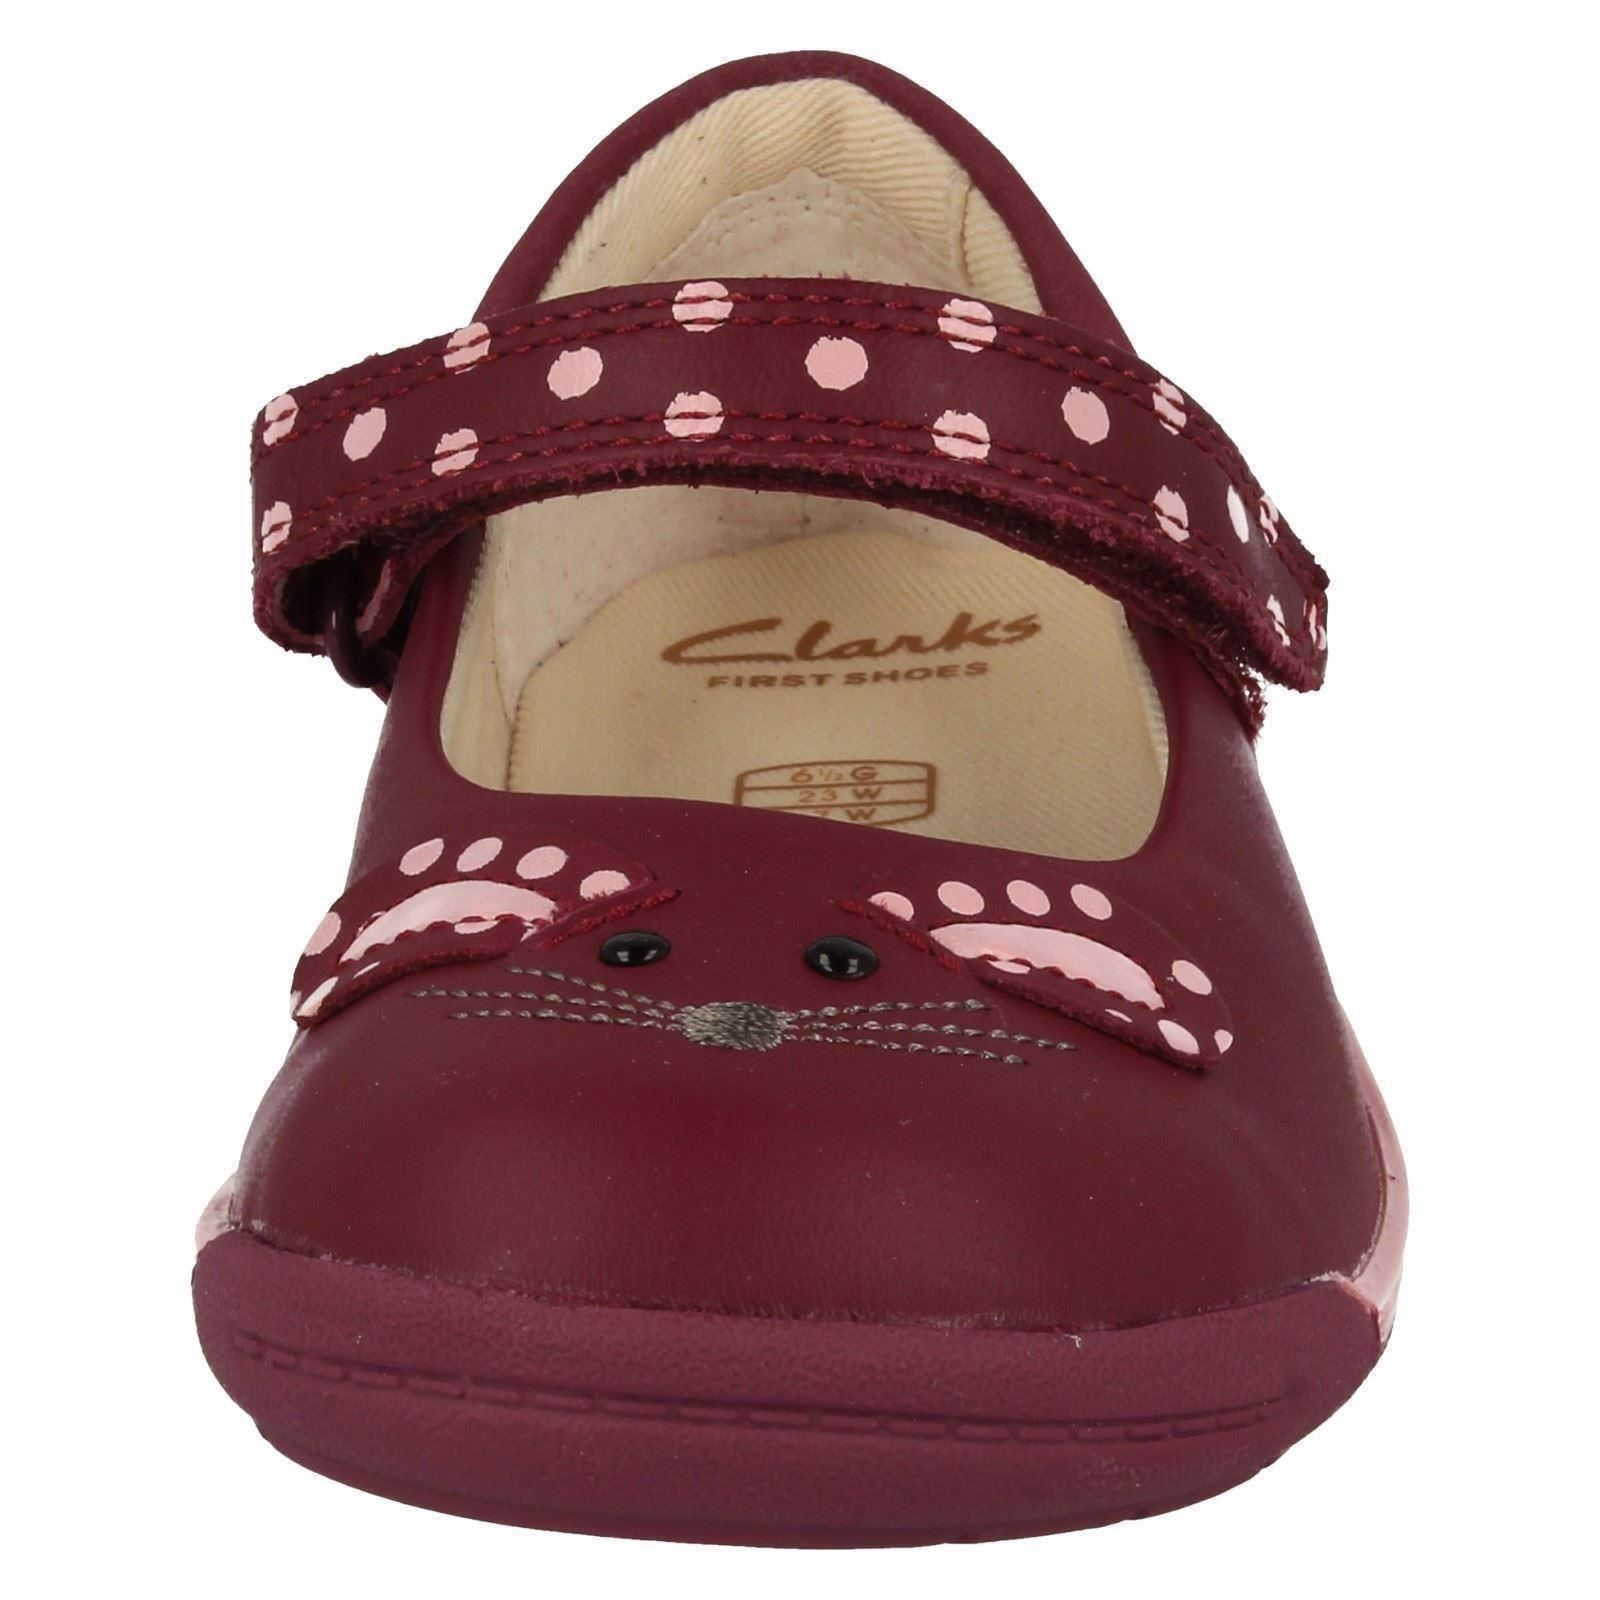 Infant Baby Girls First Clarks Leather Hook & Loop Mary Jane Shoes - Iva Pip